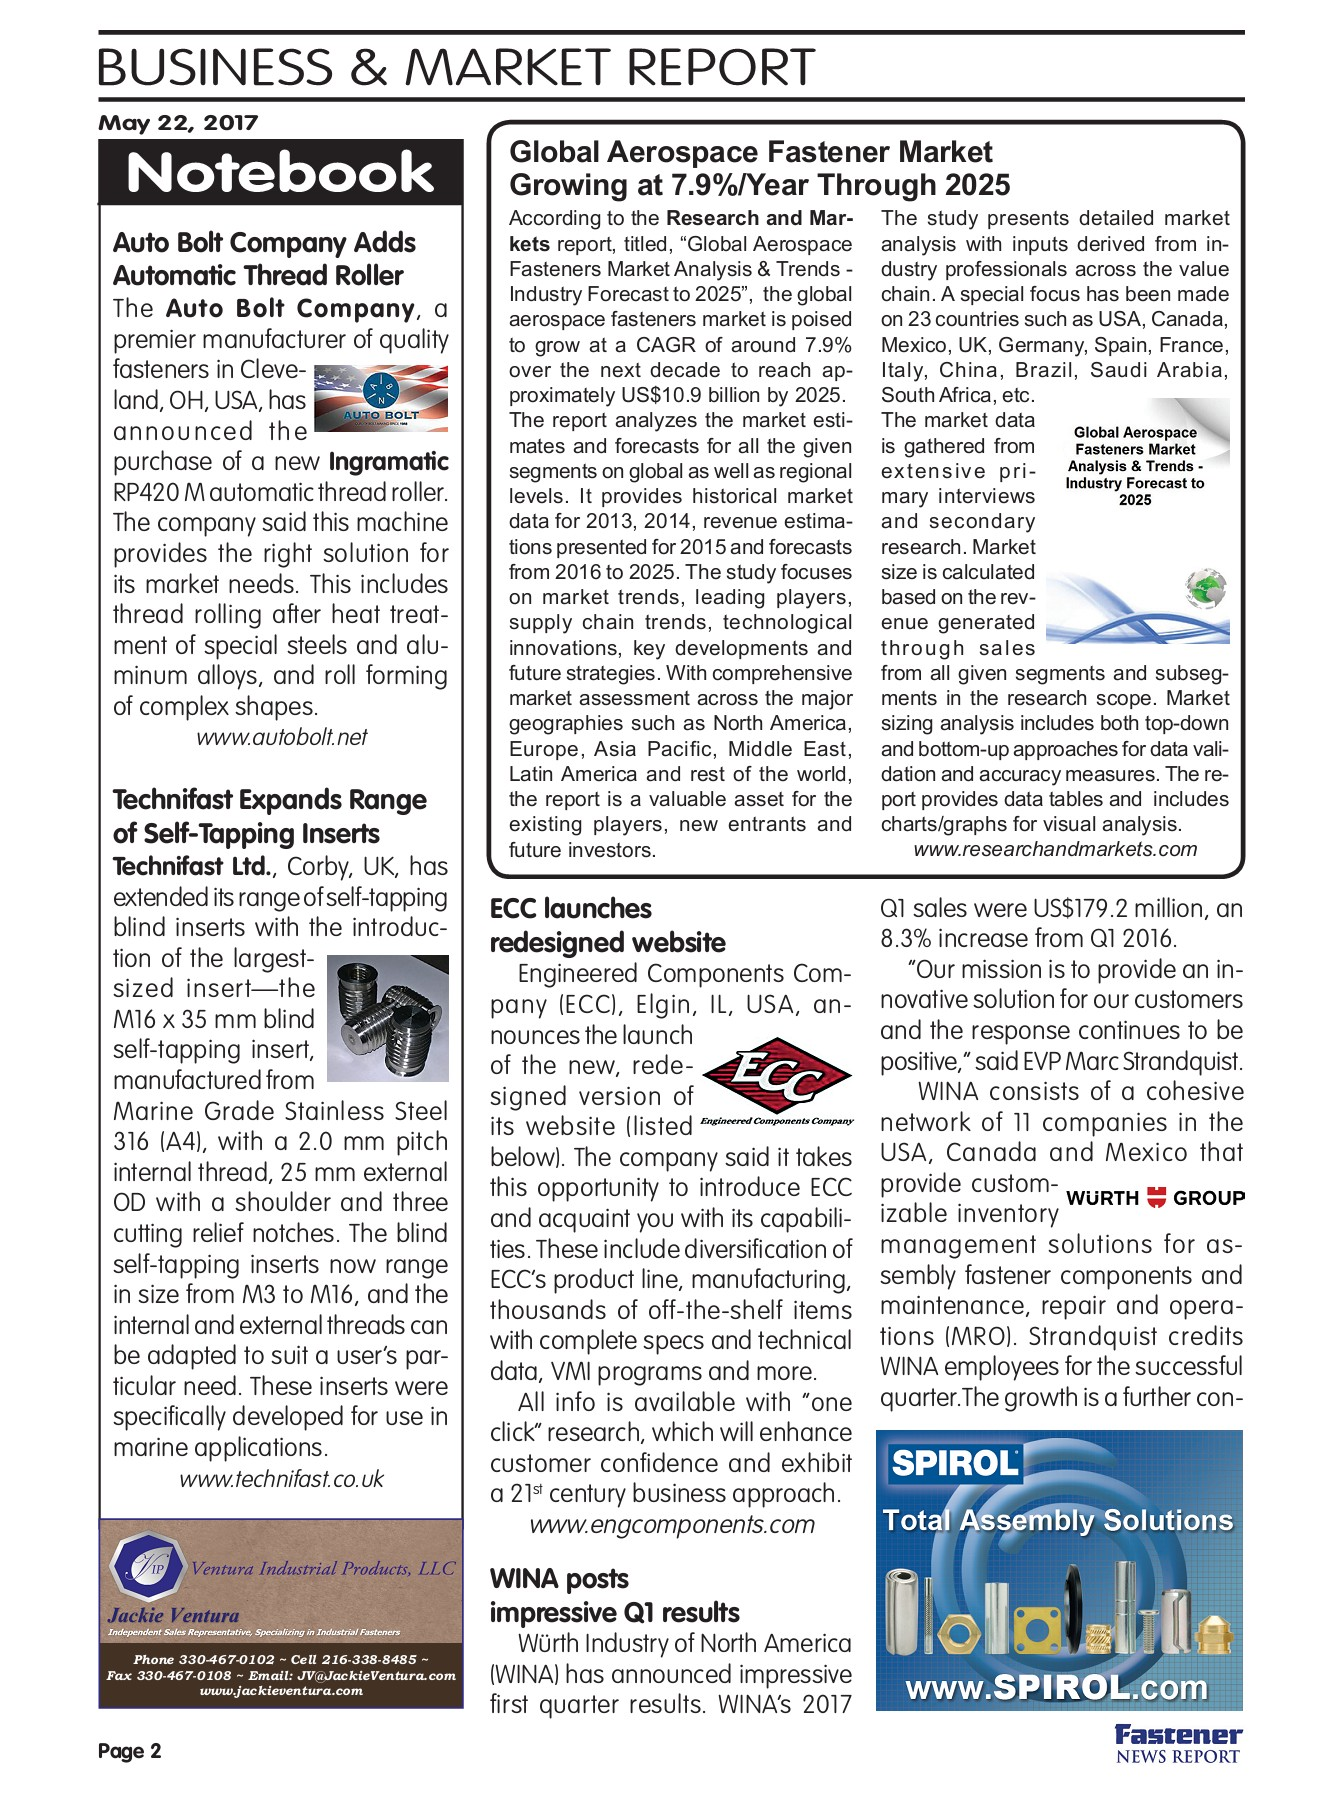 Fastener News Report May 22 Flip Book Edition Pages 1 - 8 - Text